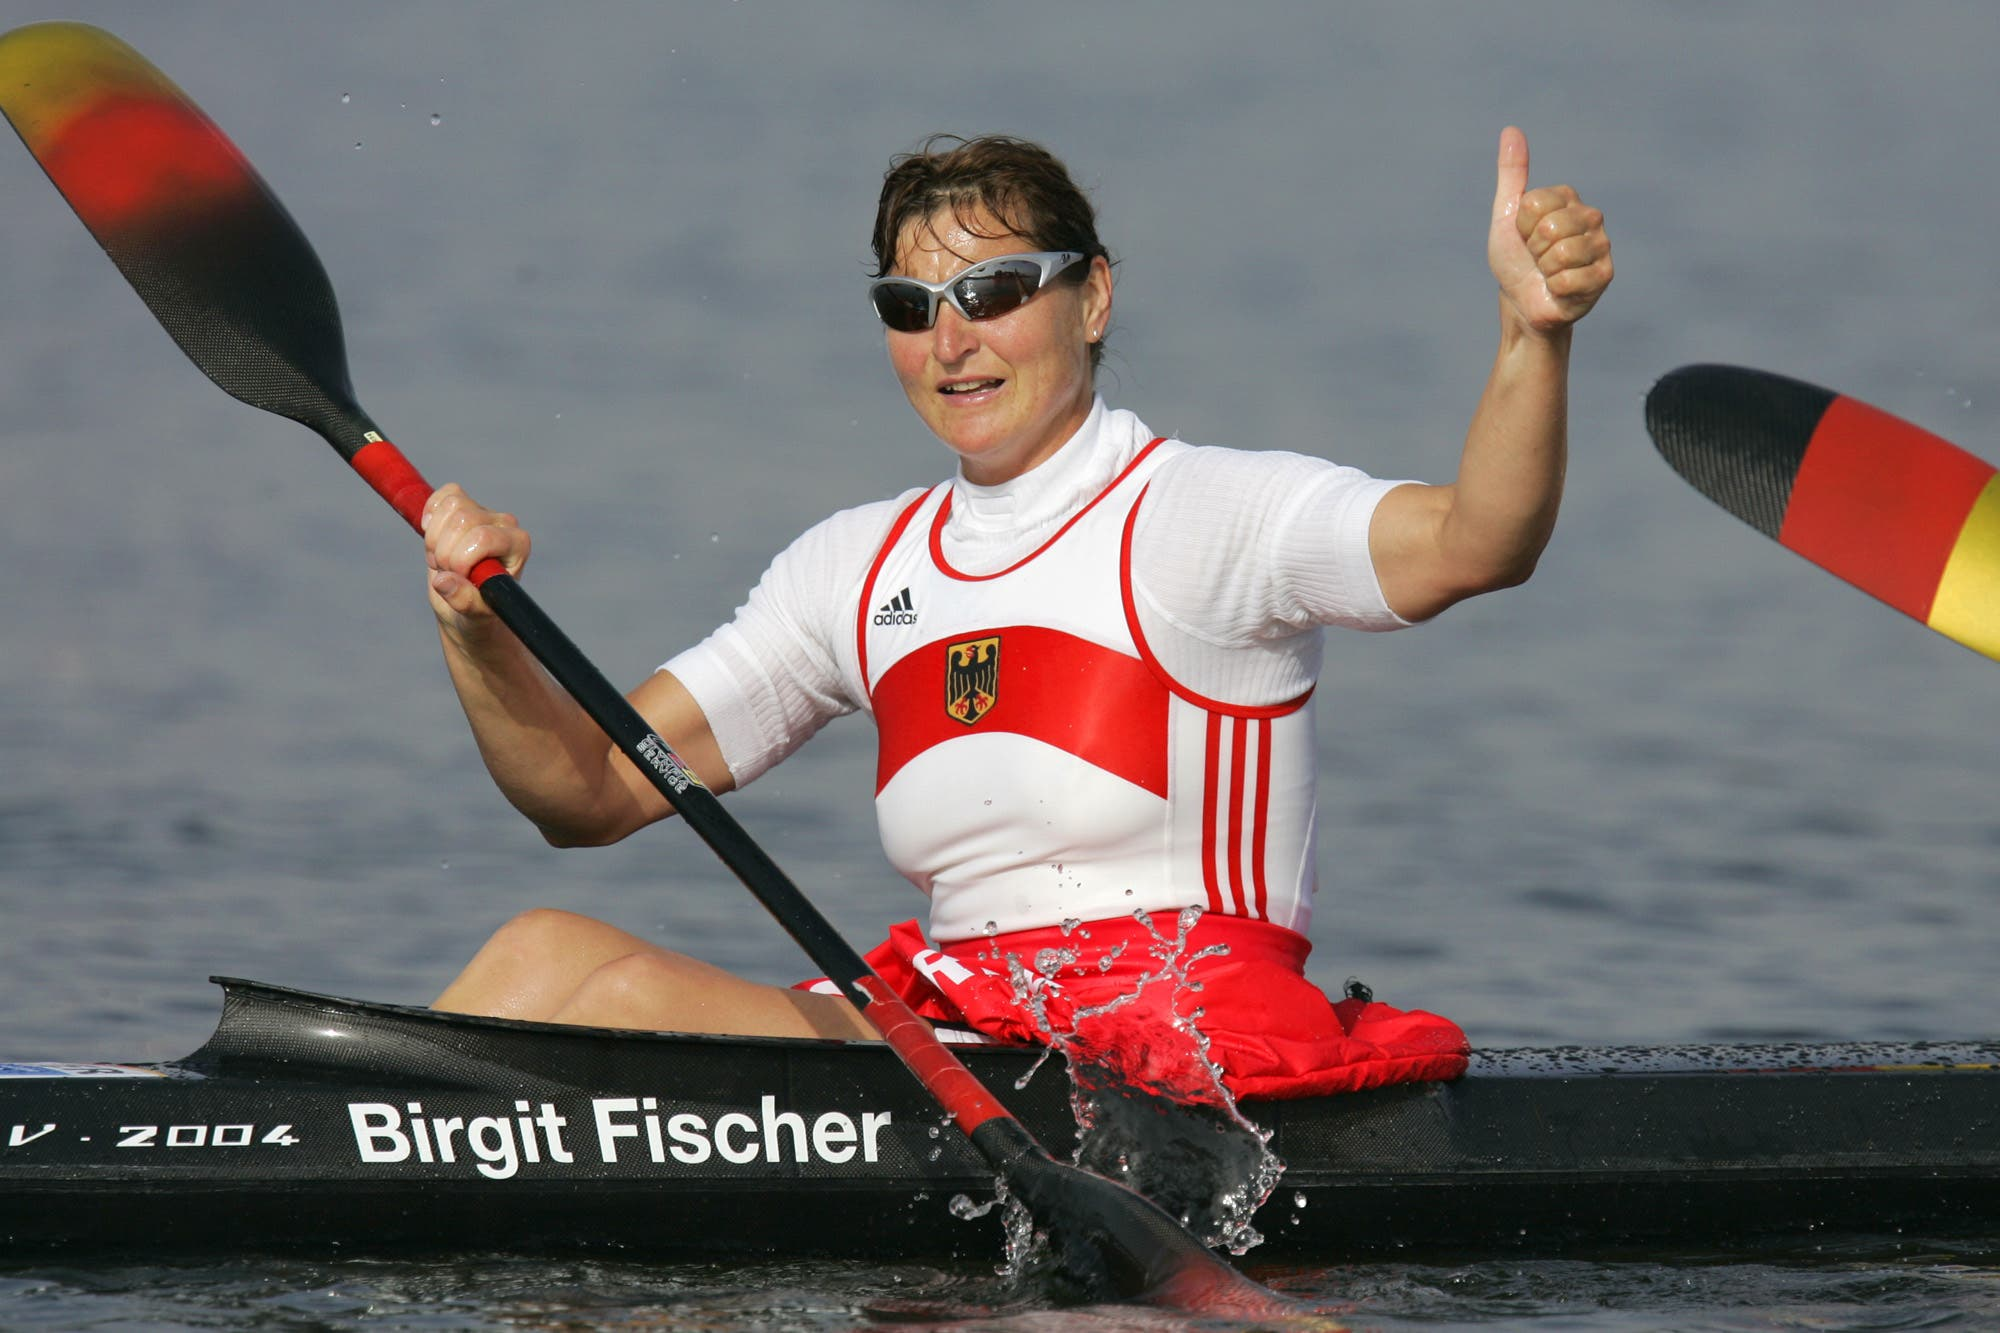 Germany's seven-time kayaking gold medalist Birgit Fischer celebrates after she and her teammates won the Women's K4 500 meter final to take the gold medal, during the kayak flatwater event at the 2004 Olympic Games in Schinias near Athens, Greece, Friday, Aug. 27, 2004. (AP)